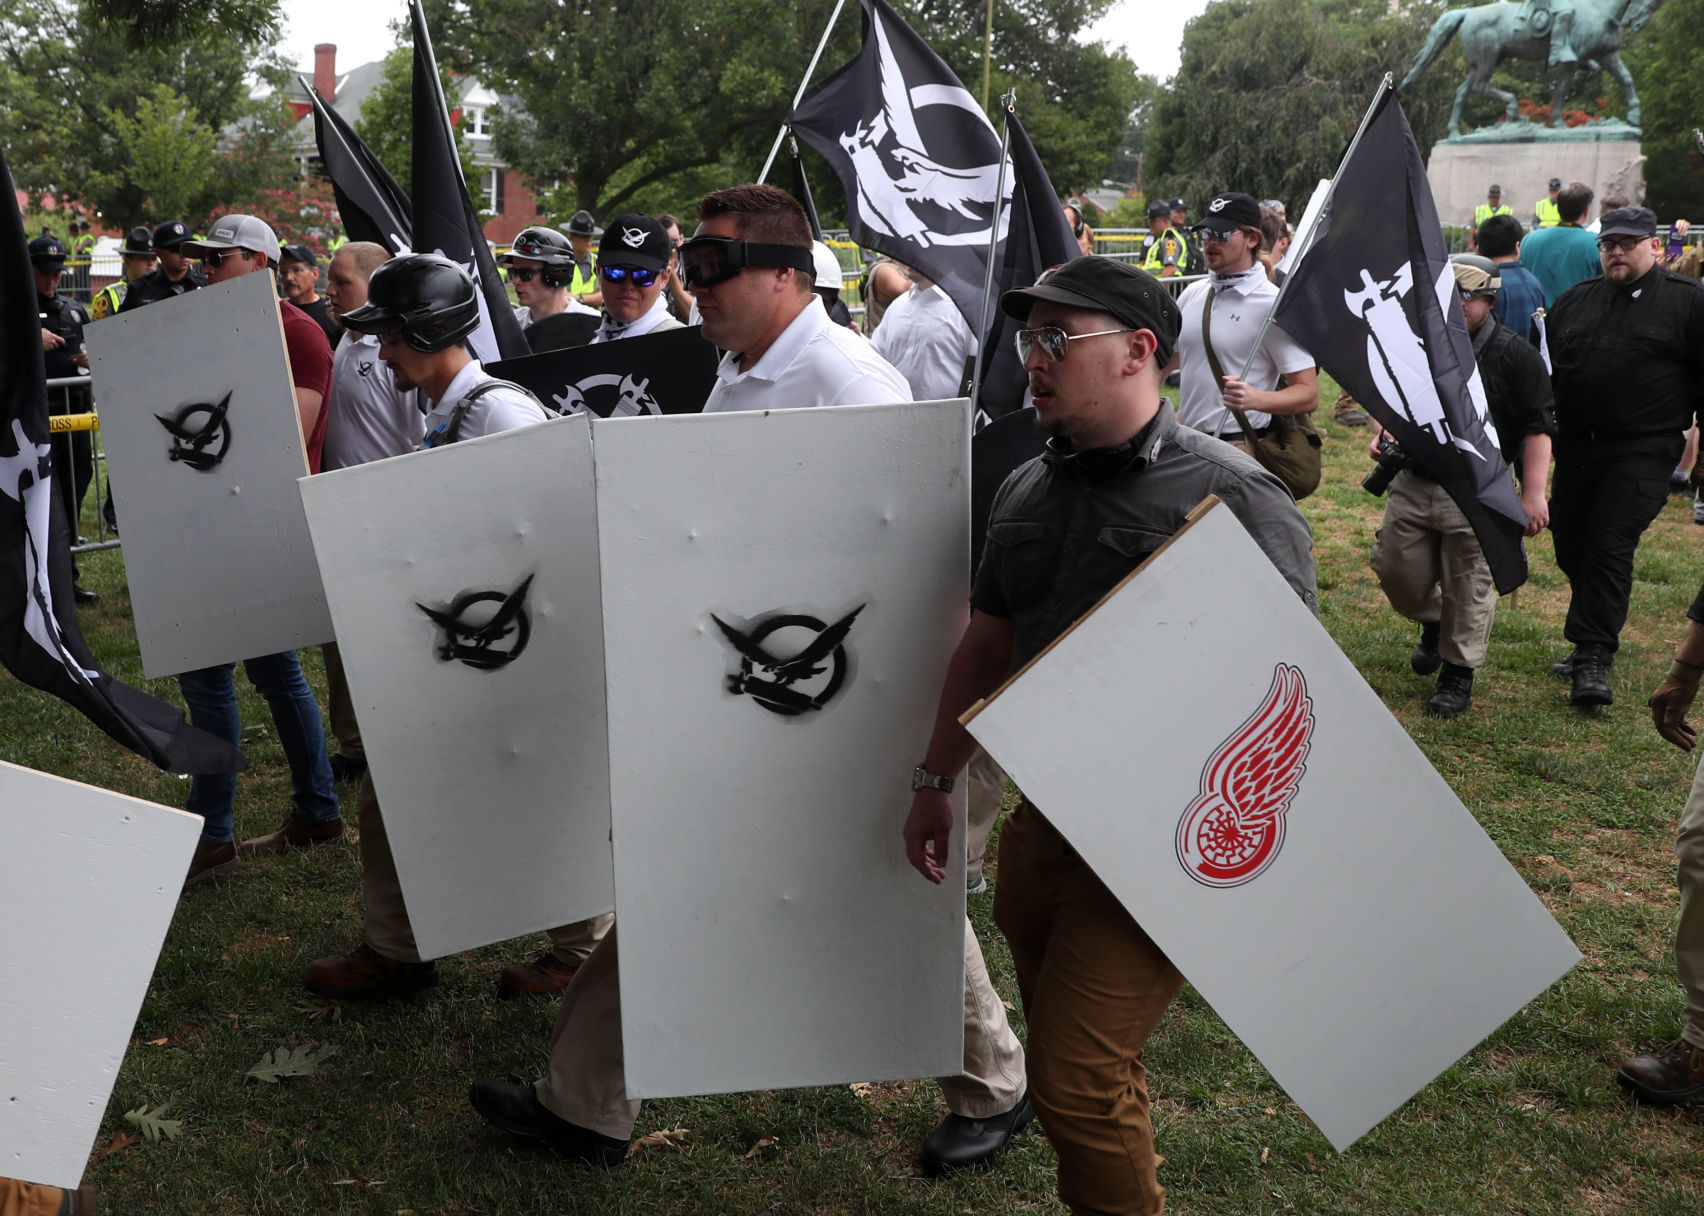 Detroit Red Wings denounce use of their logo at white supremacist demonstration